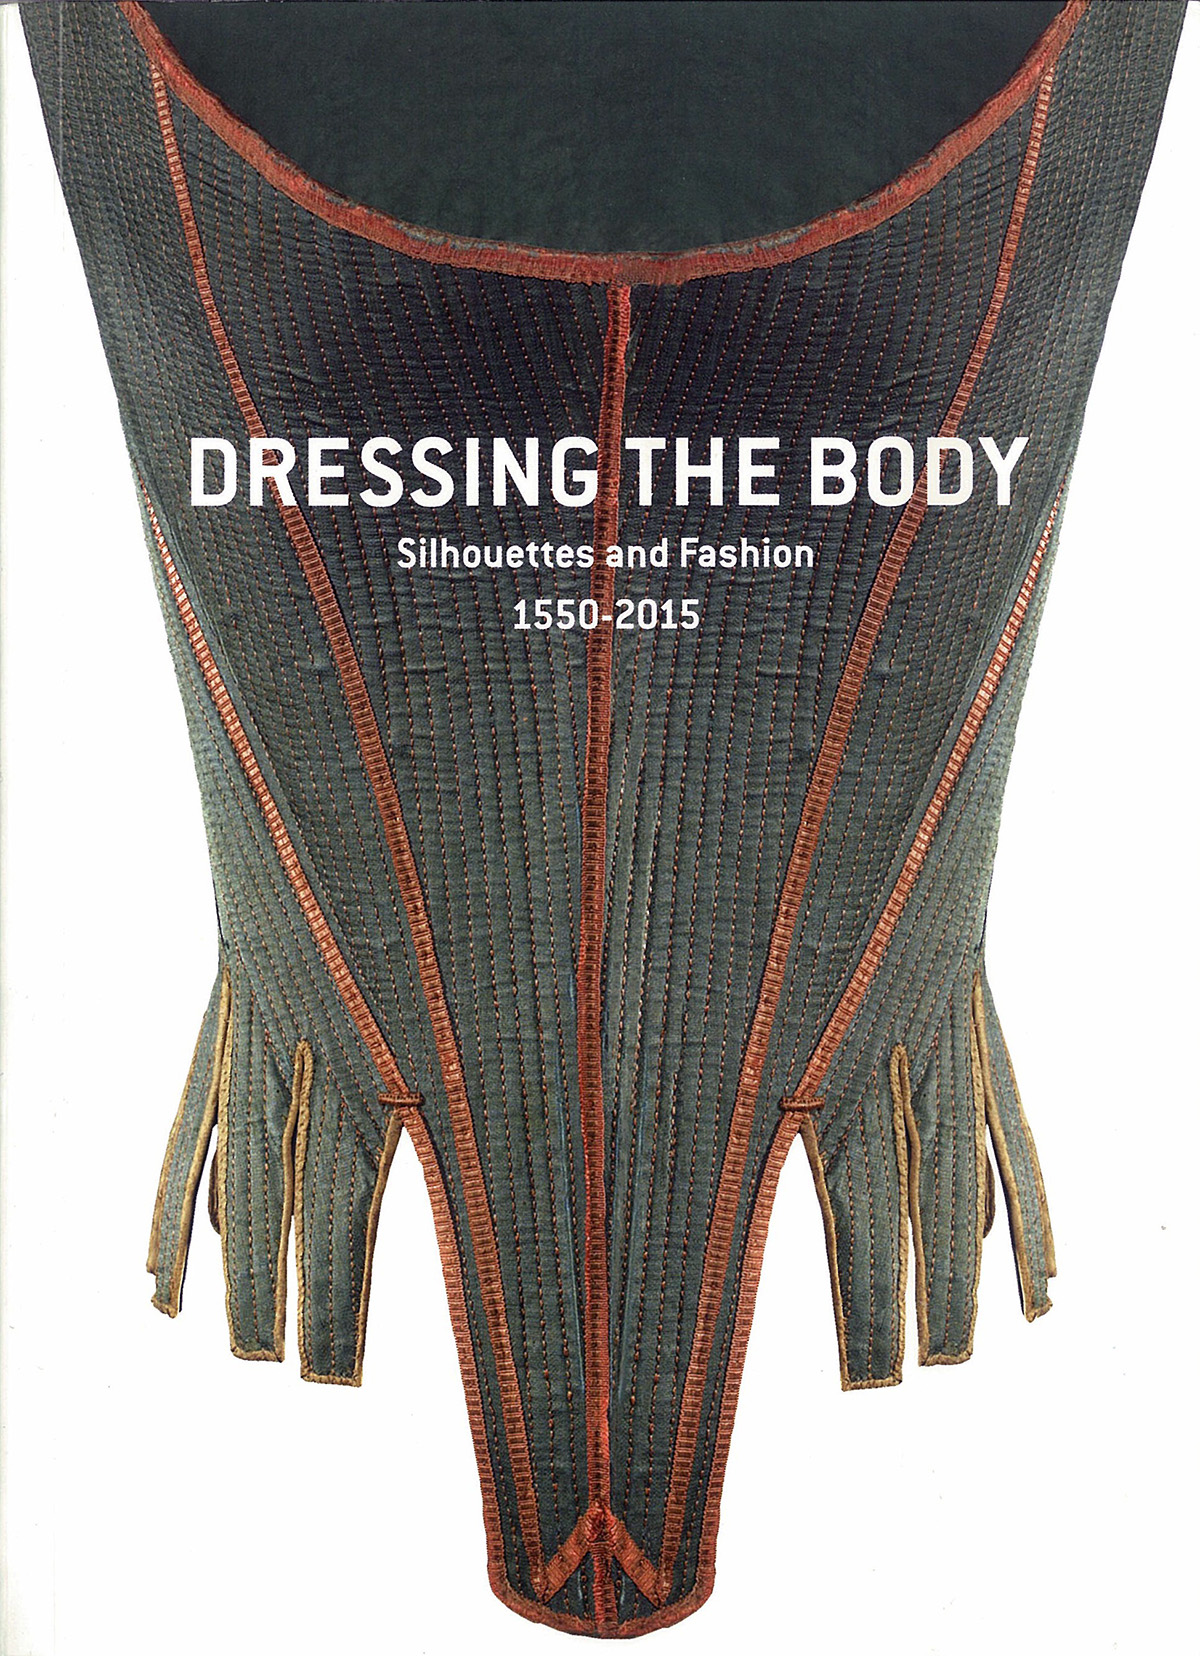 Dressing the body